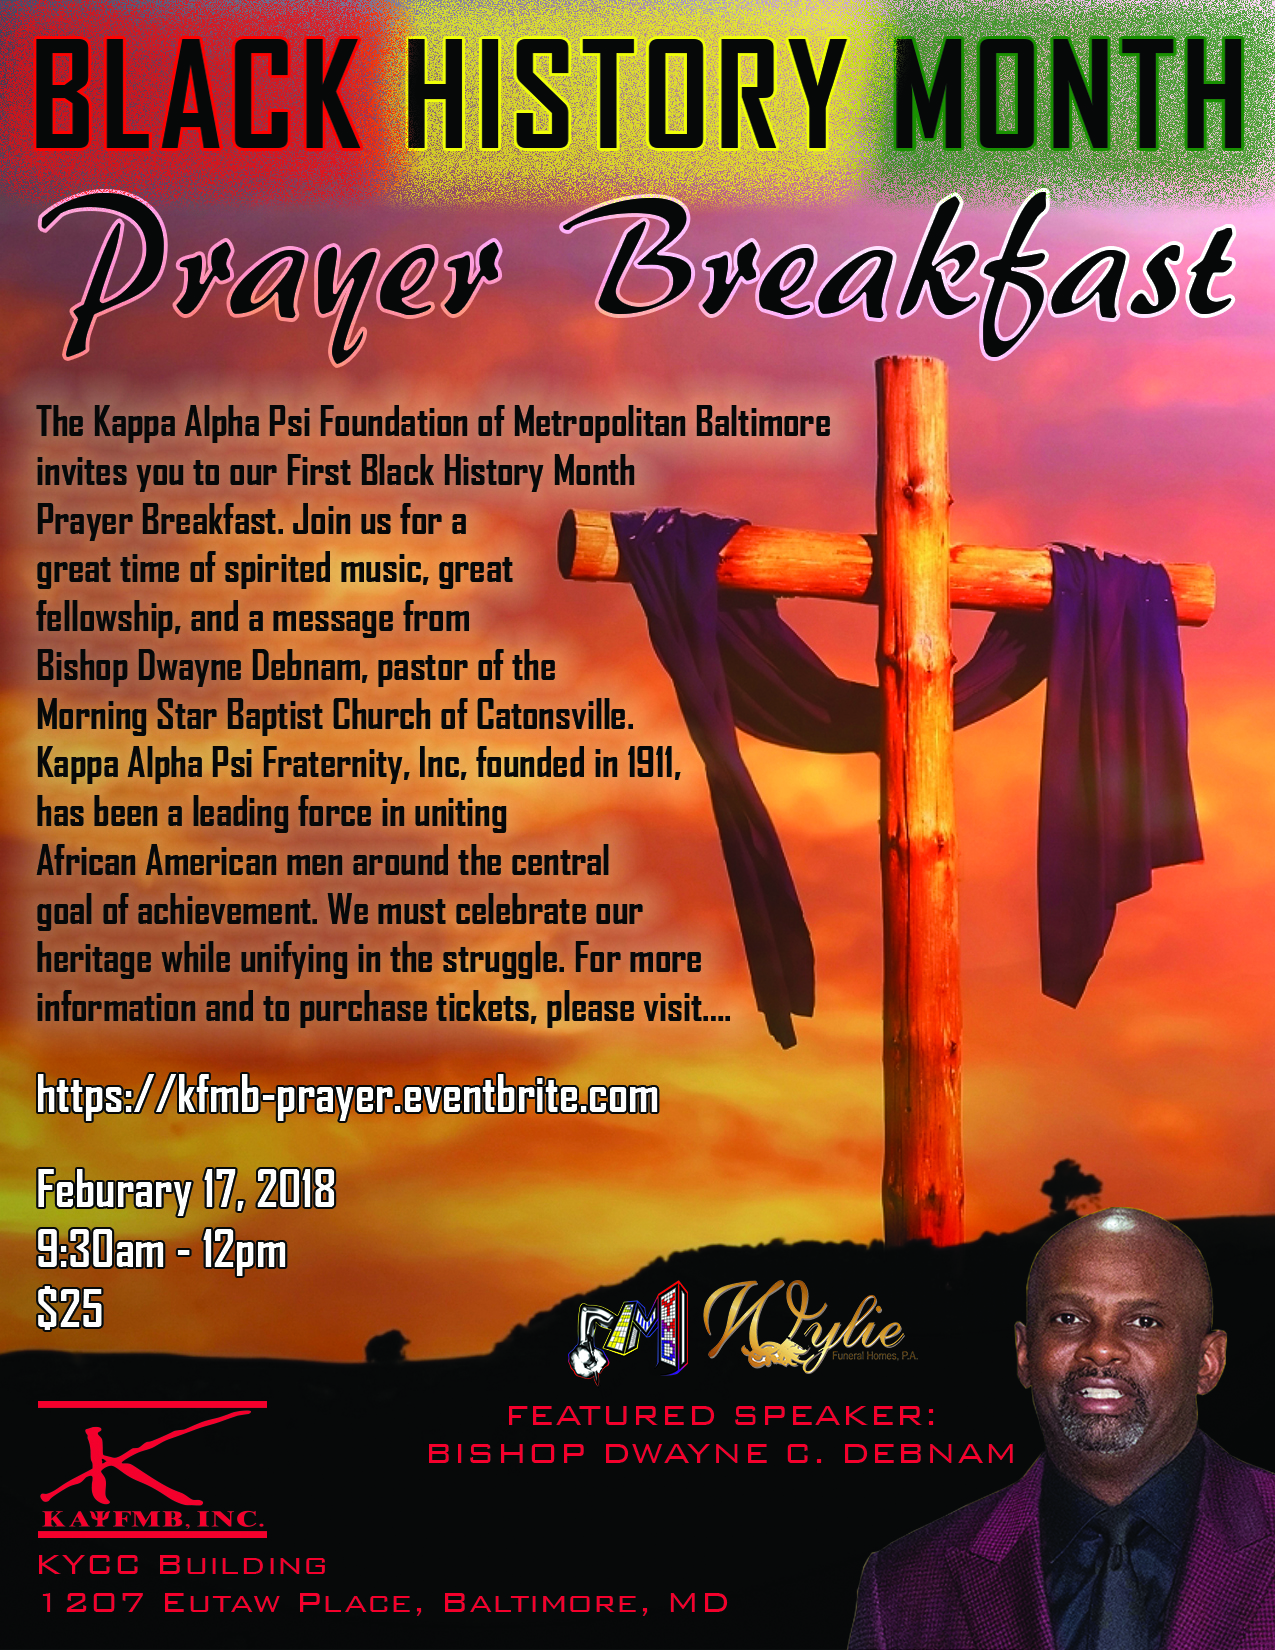 2018 Black History Month Prayer Breakfast